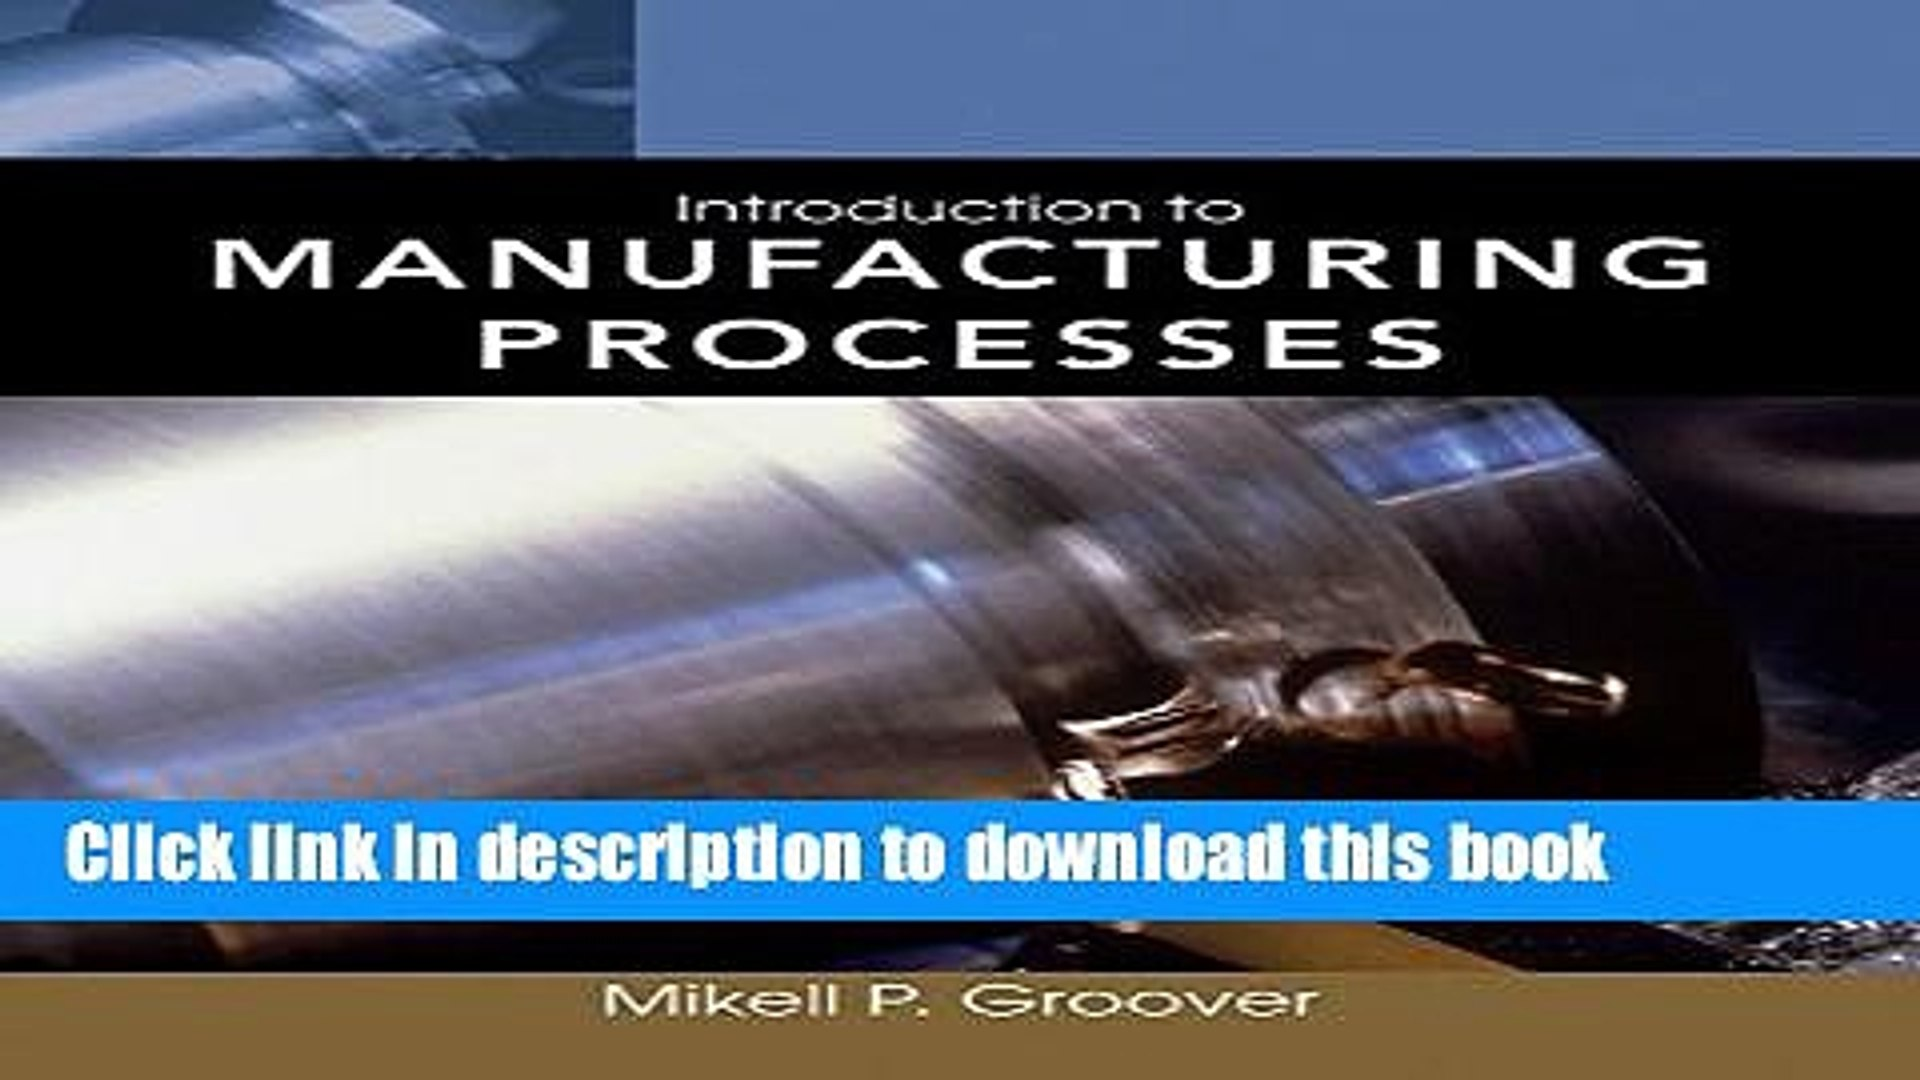 [PDF] Introduction to Manufacturing Processes Full Online